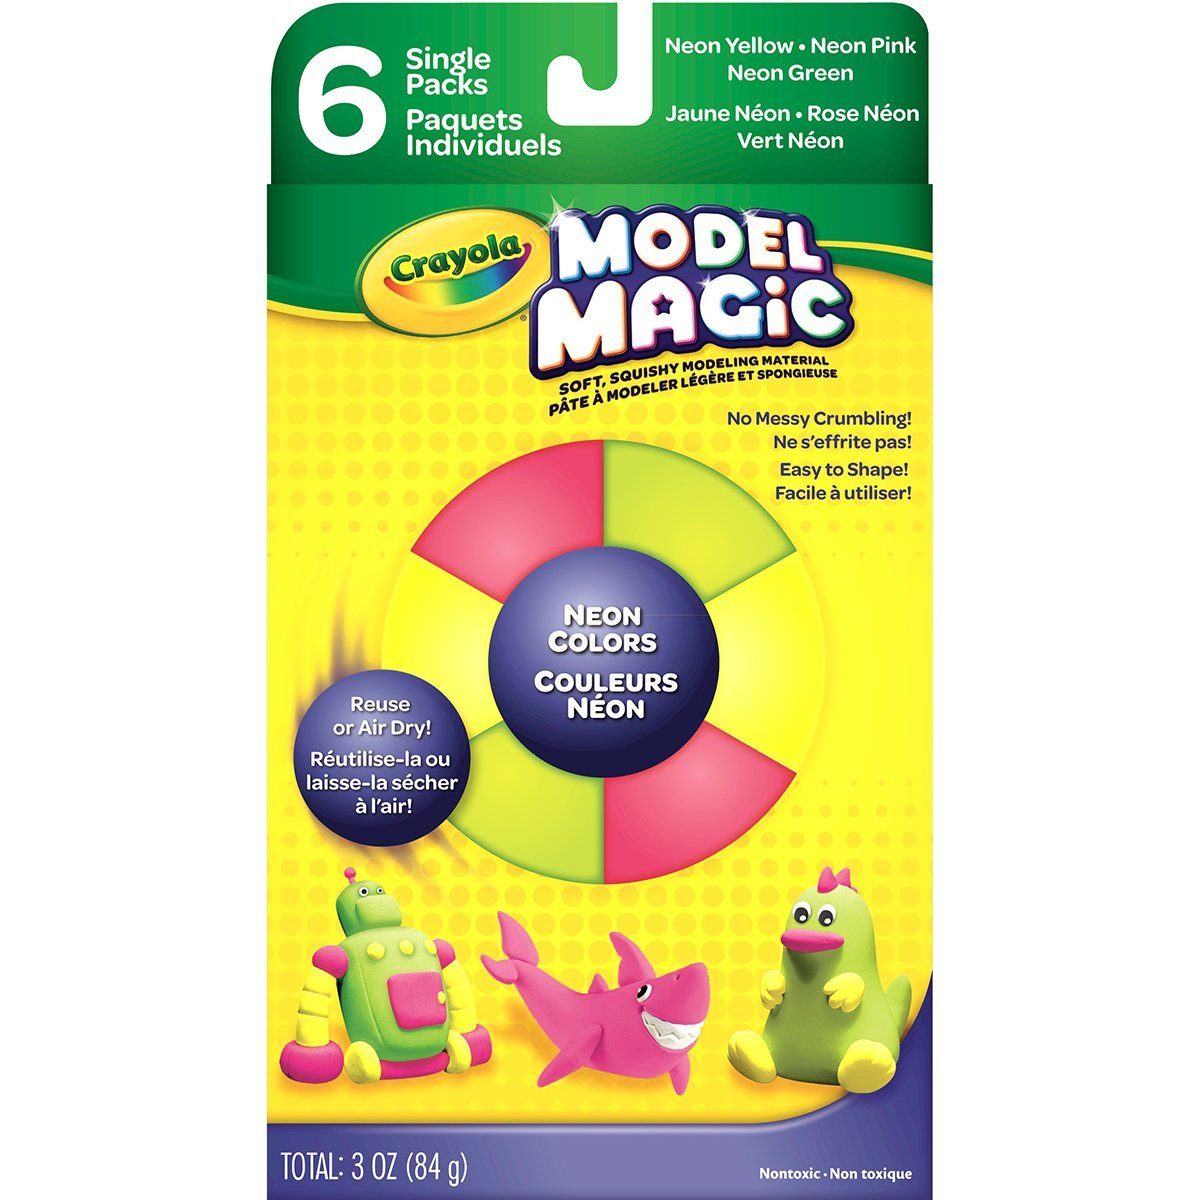 Model Magic Neon Clay, Assorted, 6-Pack, WARNING: Choking Hazard-small parts By Crayola